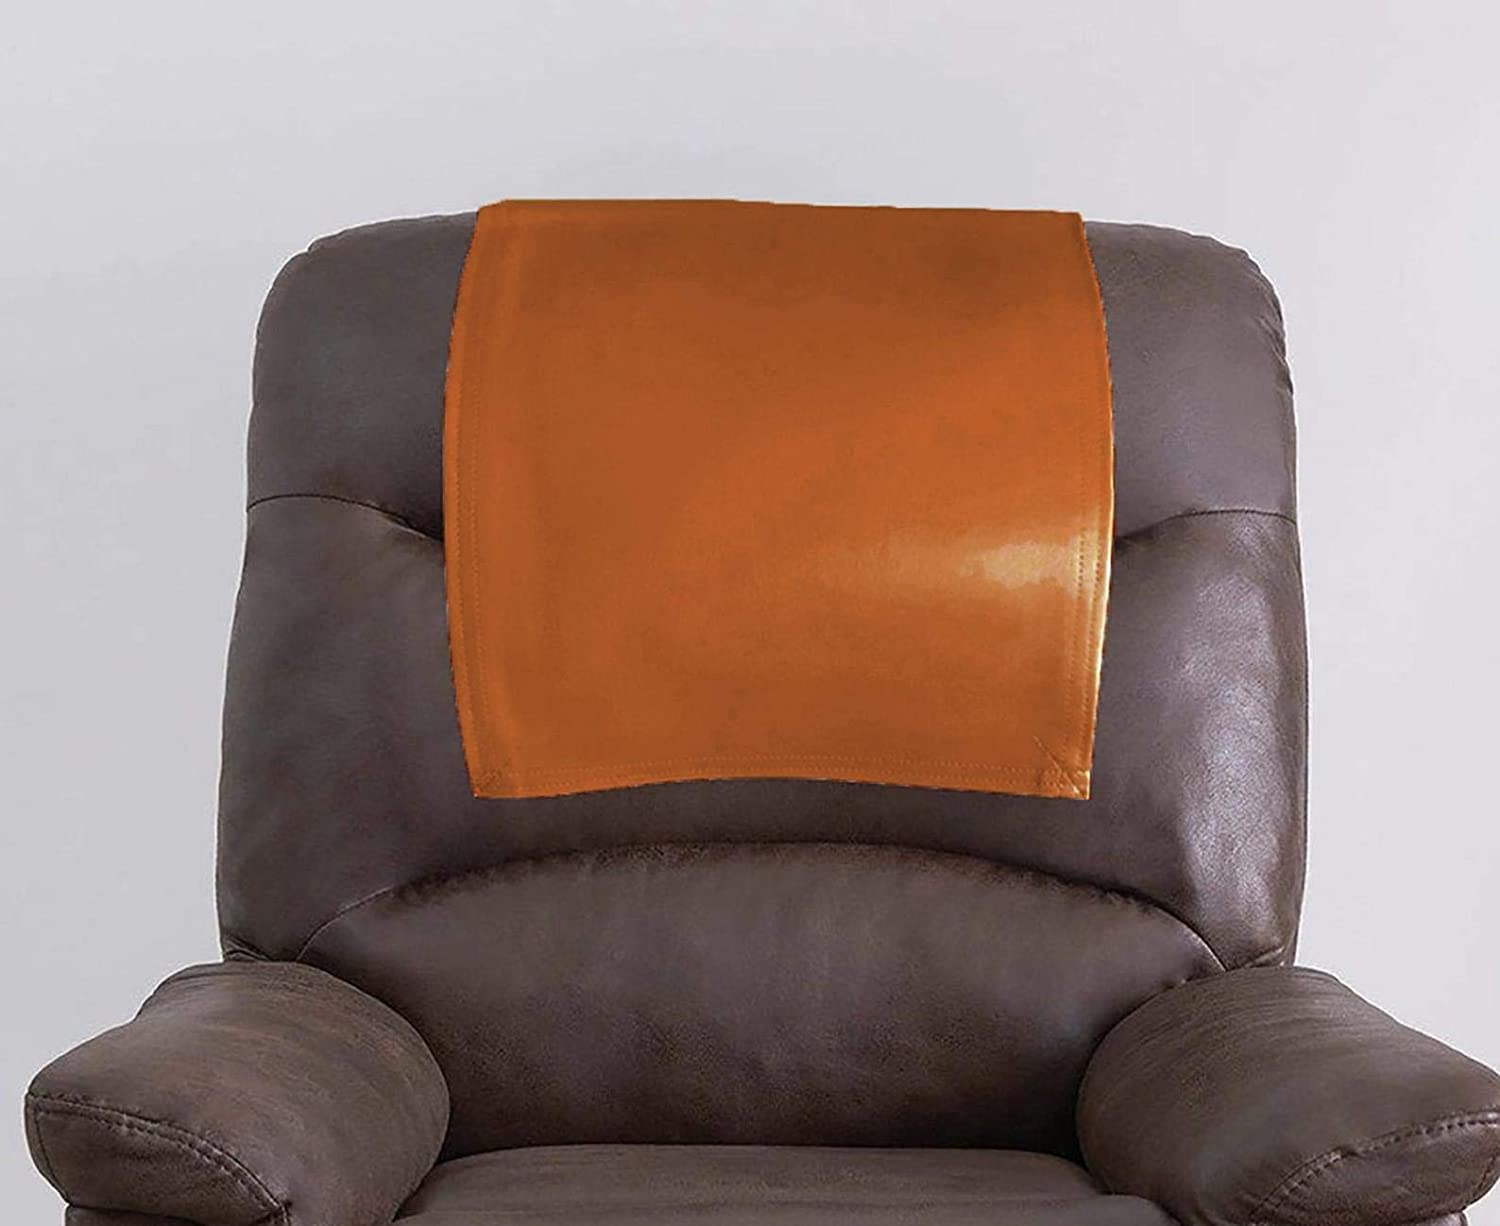 Maxiples Genuine Leather Recliner Furnitur Chair New Time sale Shipping Free Headrest Cover